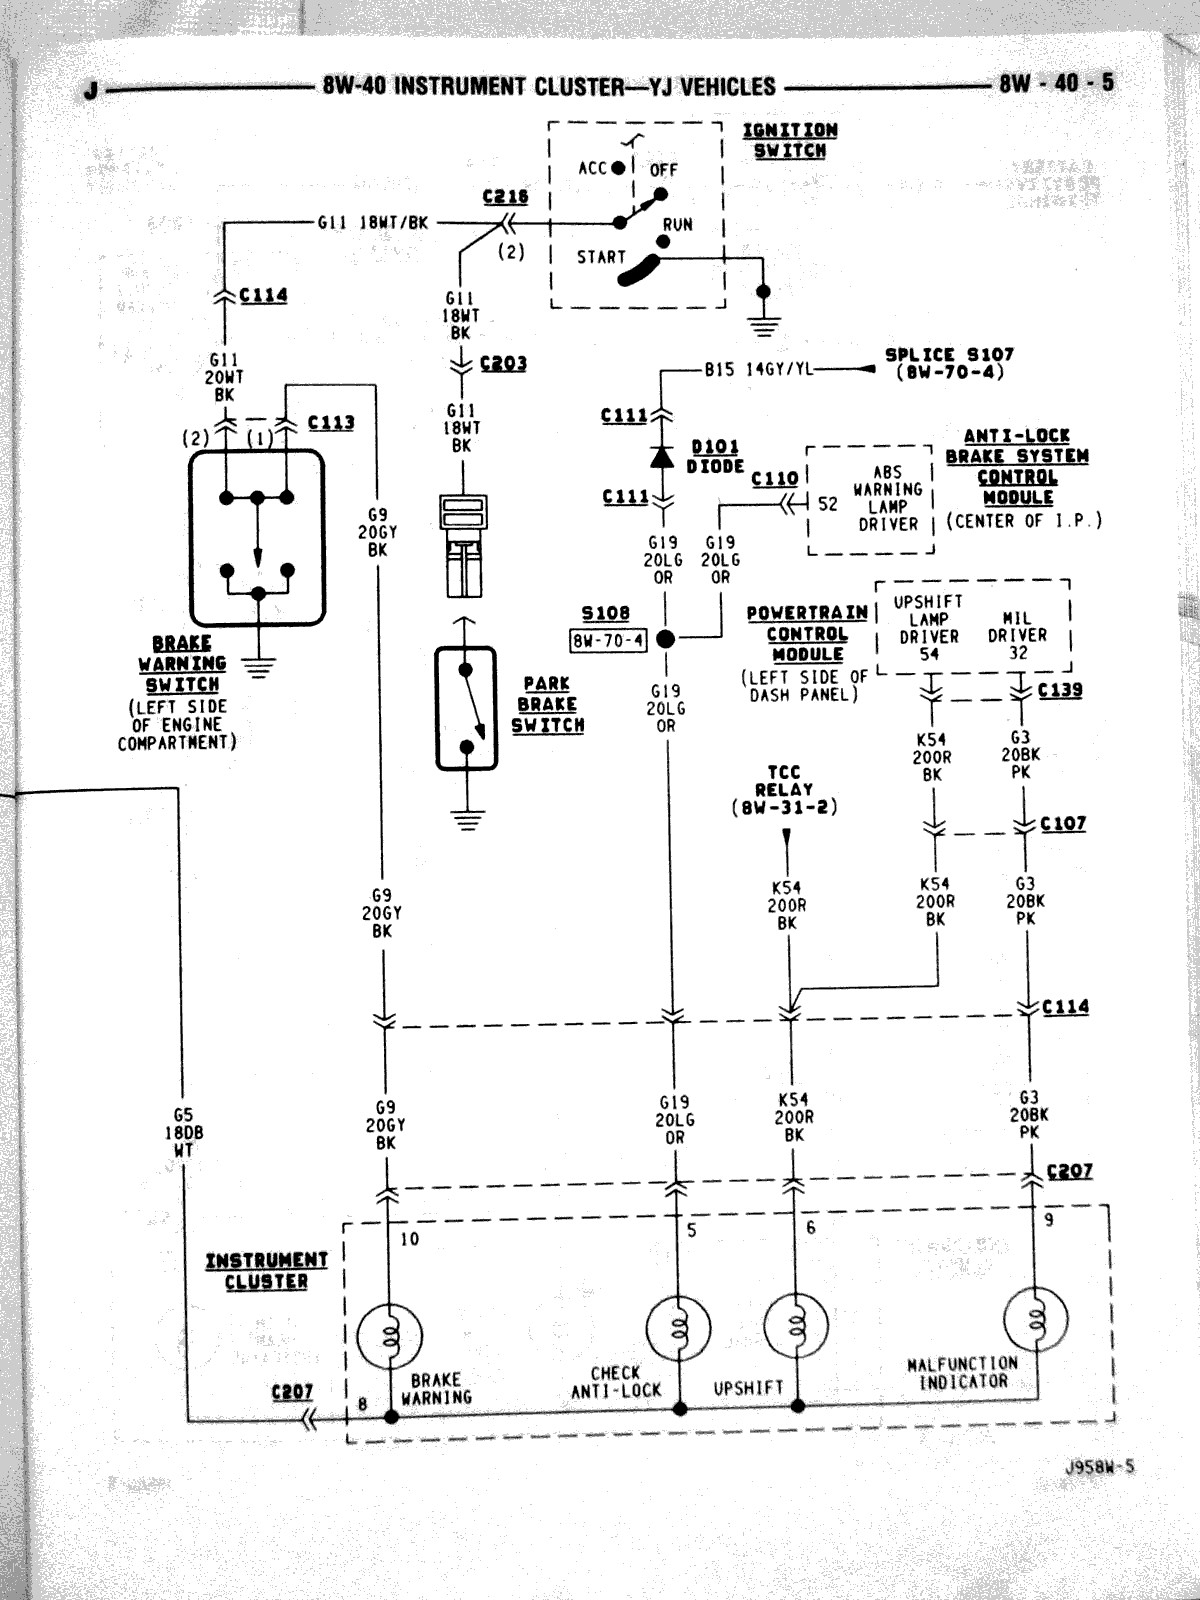 hight resolution of 92 yj fuse box diagram wiring diagram mega 1997 jeep wrangler fuse diagram fuel injector